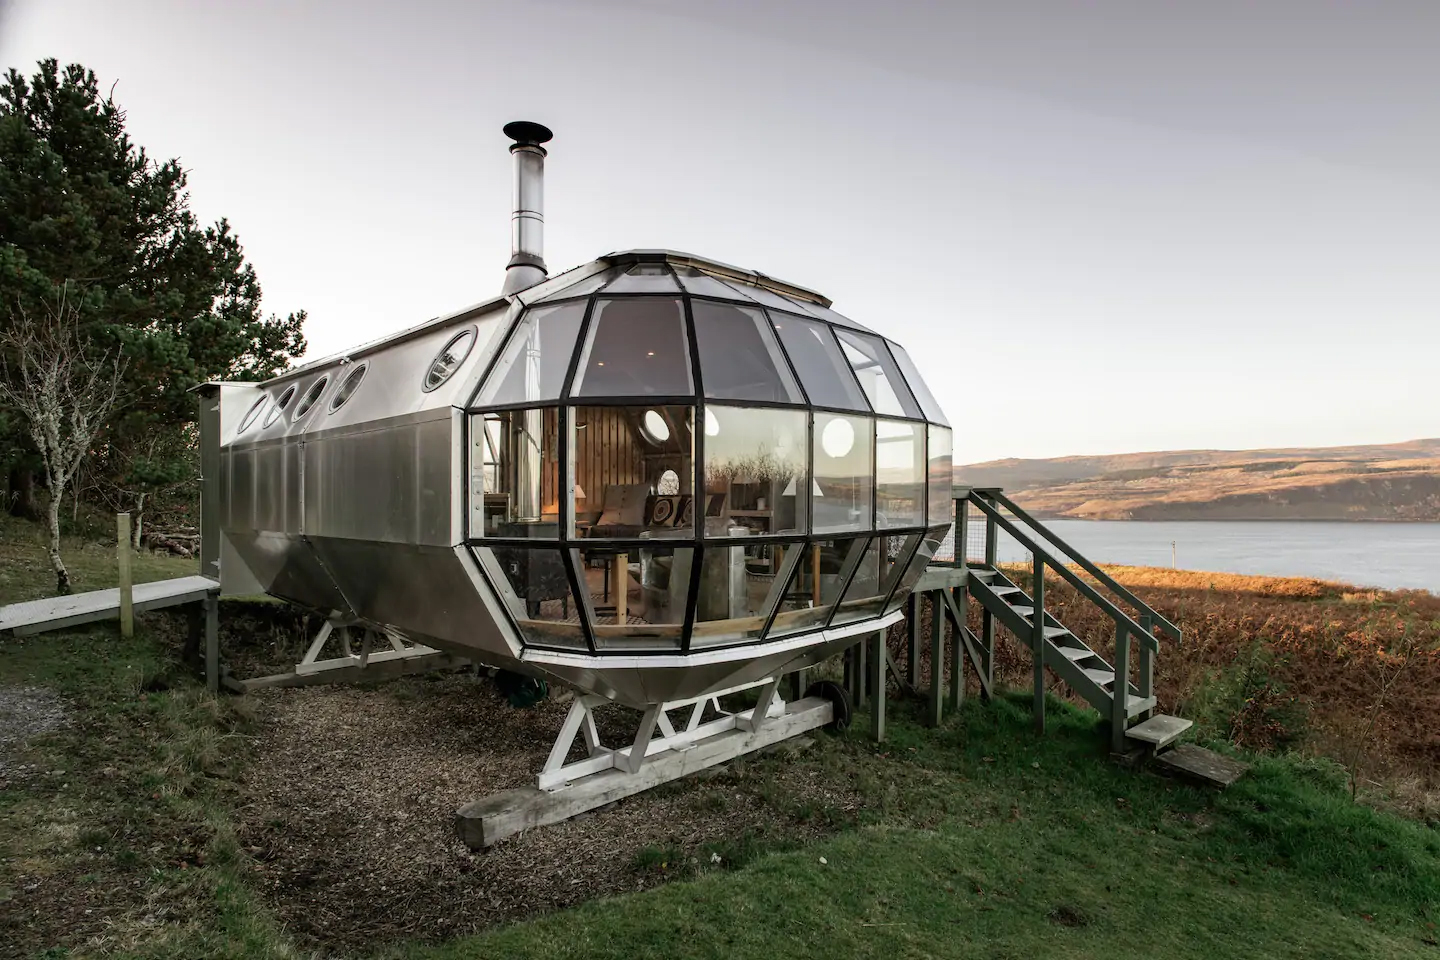 Unusual Airbnbs Scotland AirShip